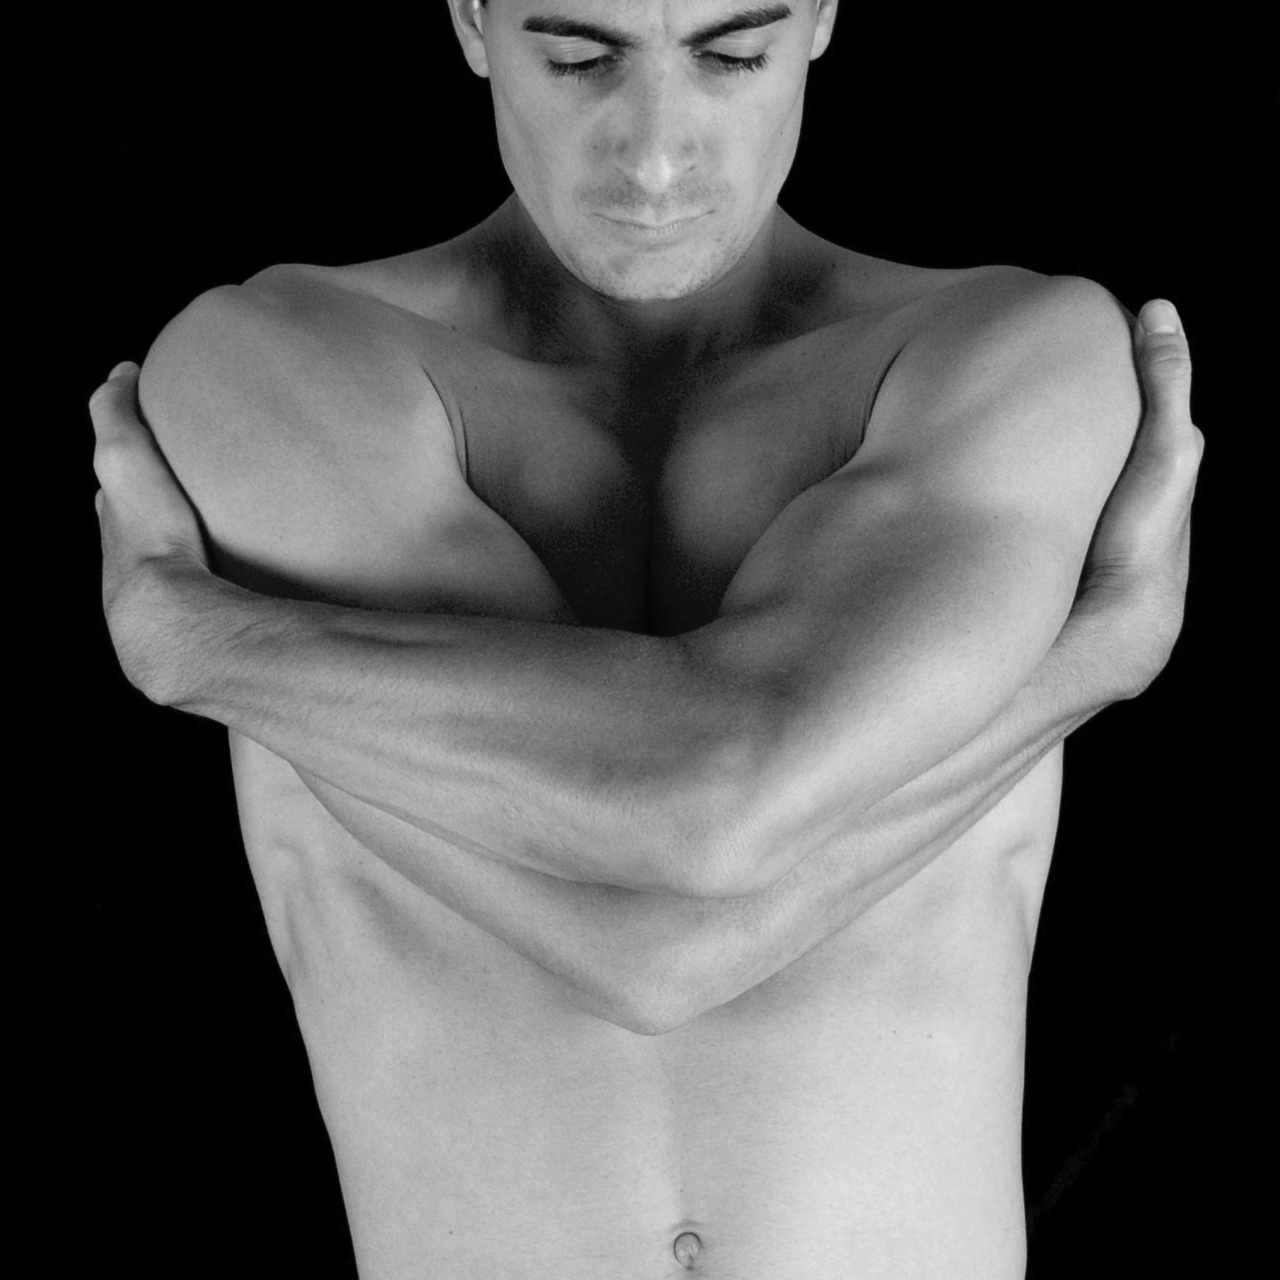 male model, topless hugging self, symmetry